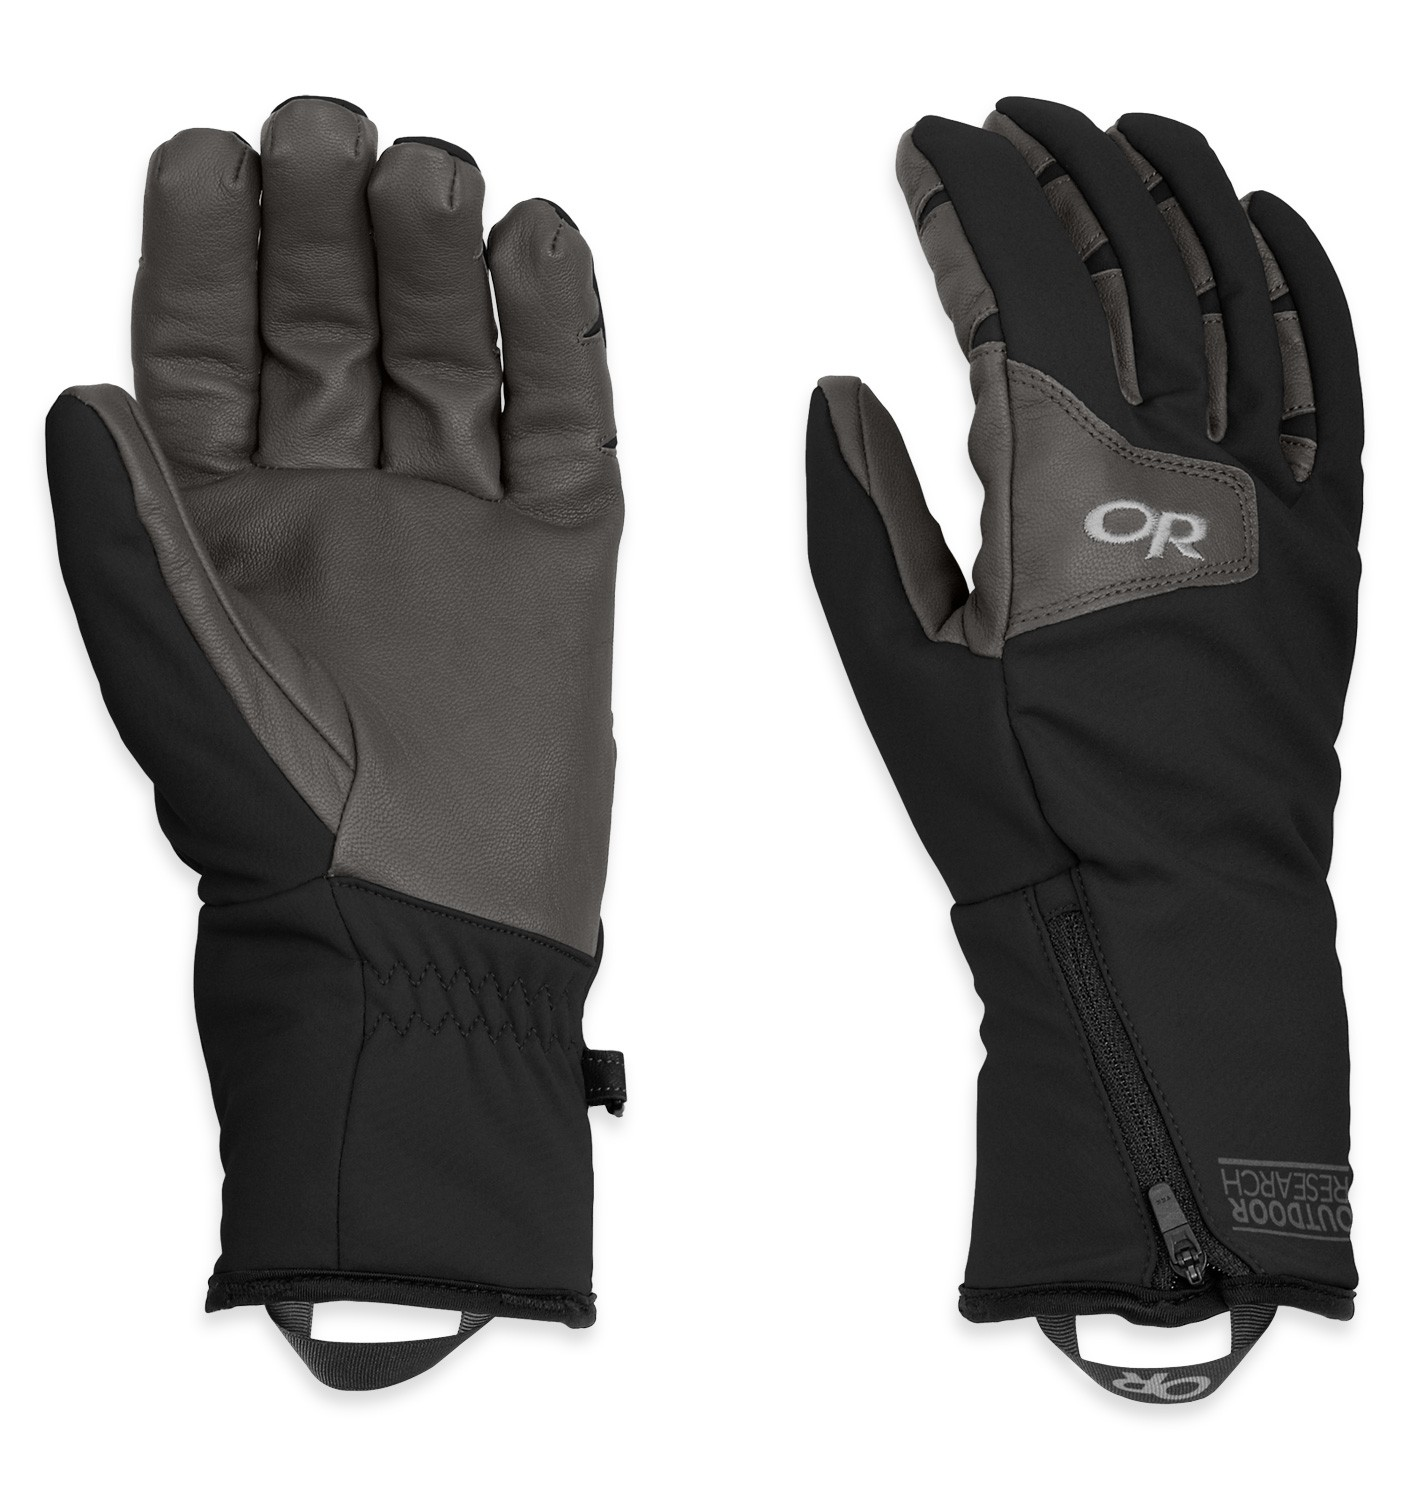 Outdoor Research StormTracker Glove Review